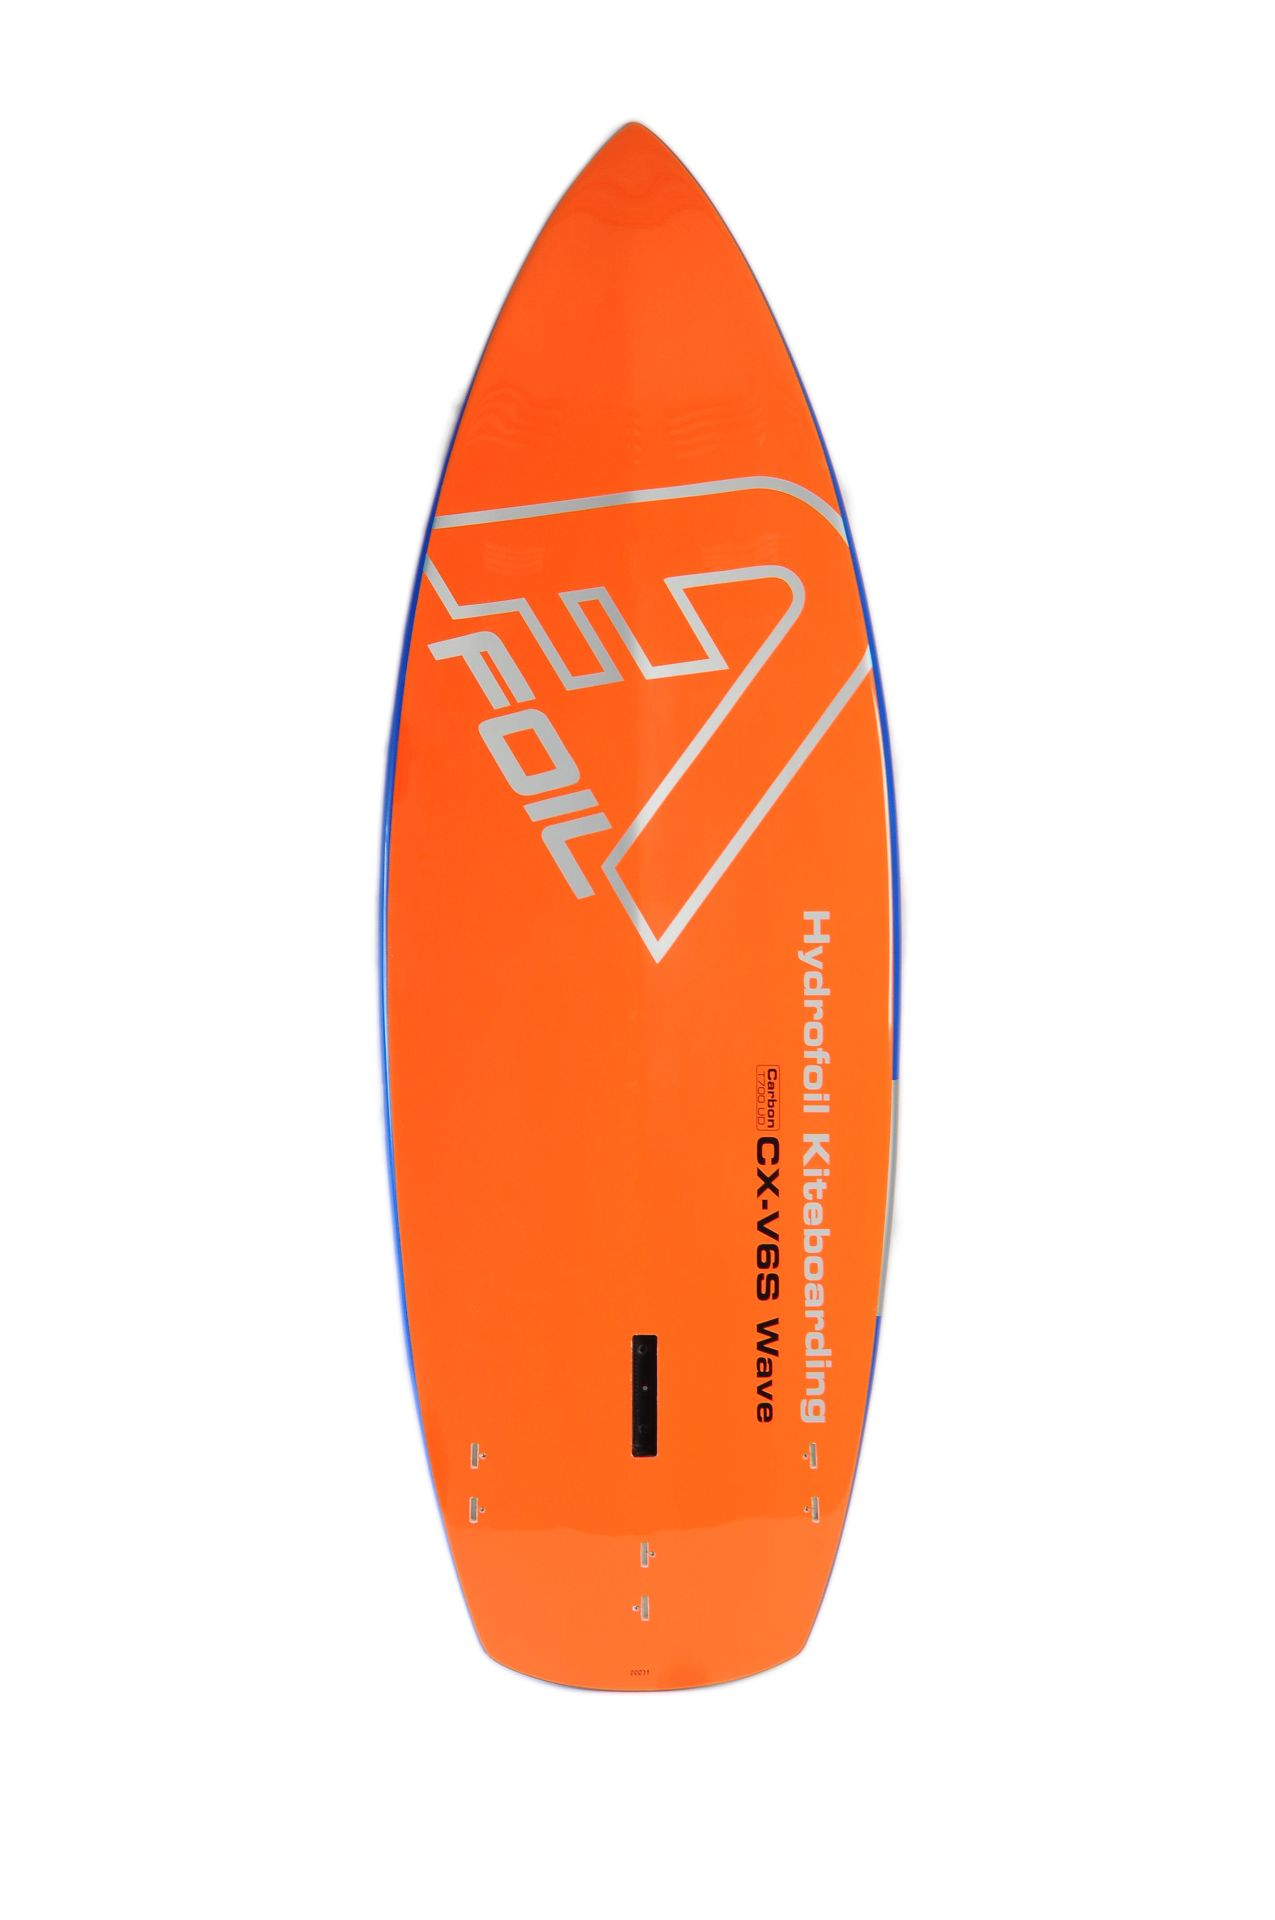 Kitefoil board alpinefoil cx v6 wave convertible 4267 1